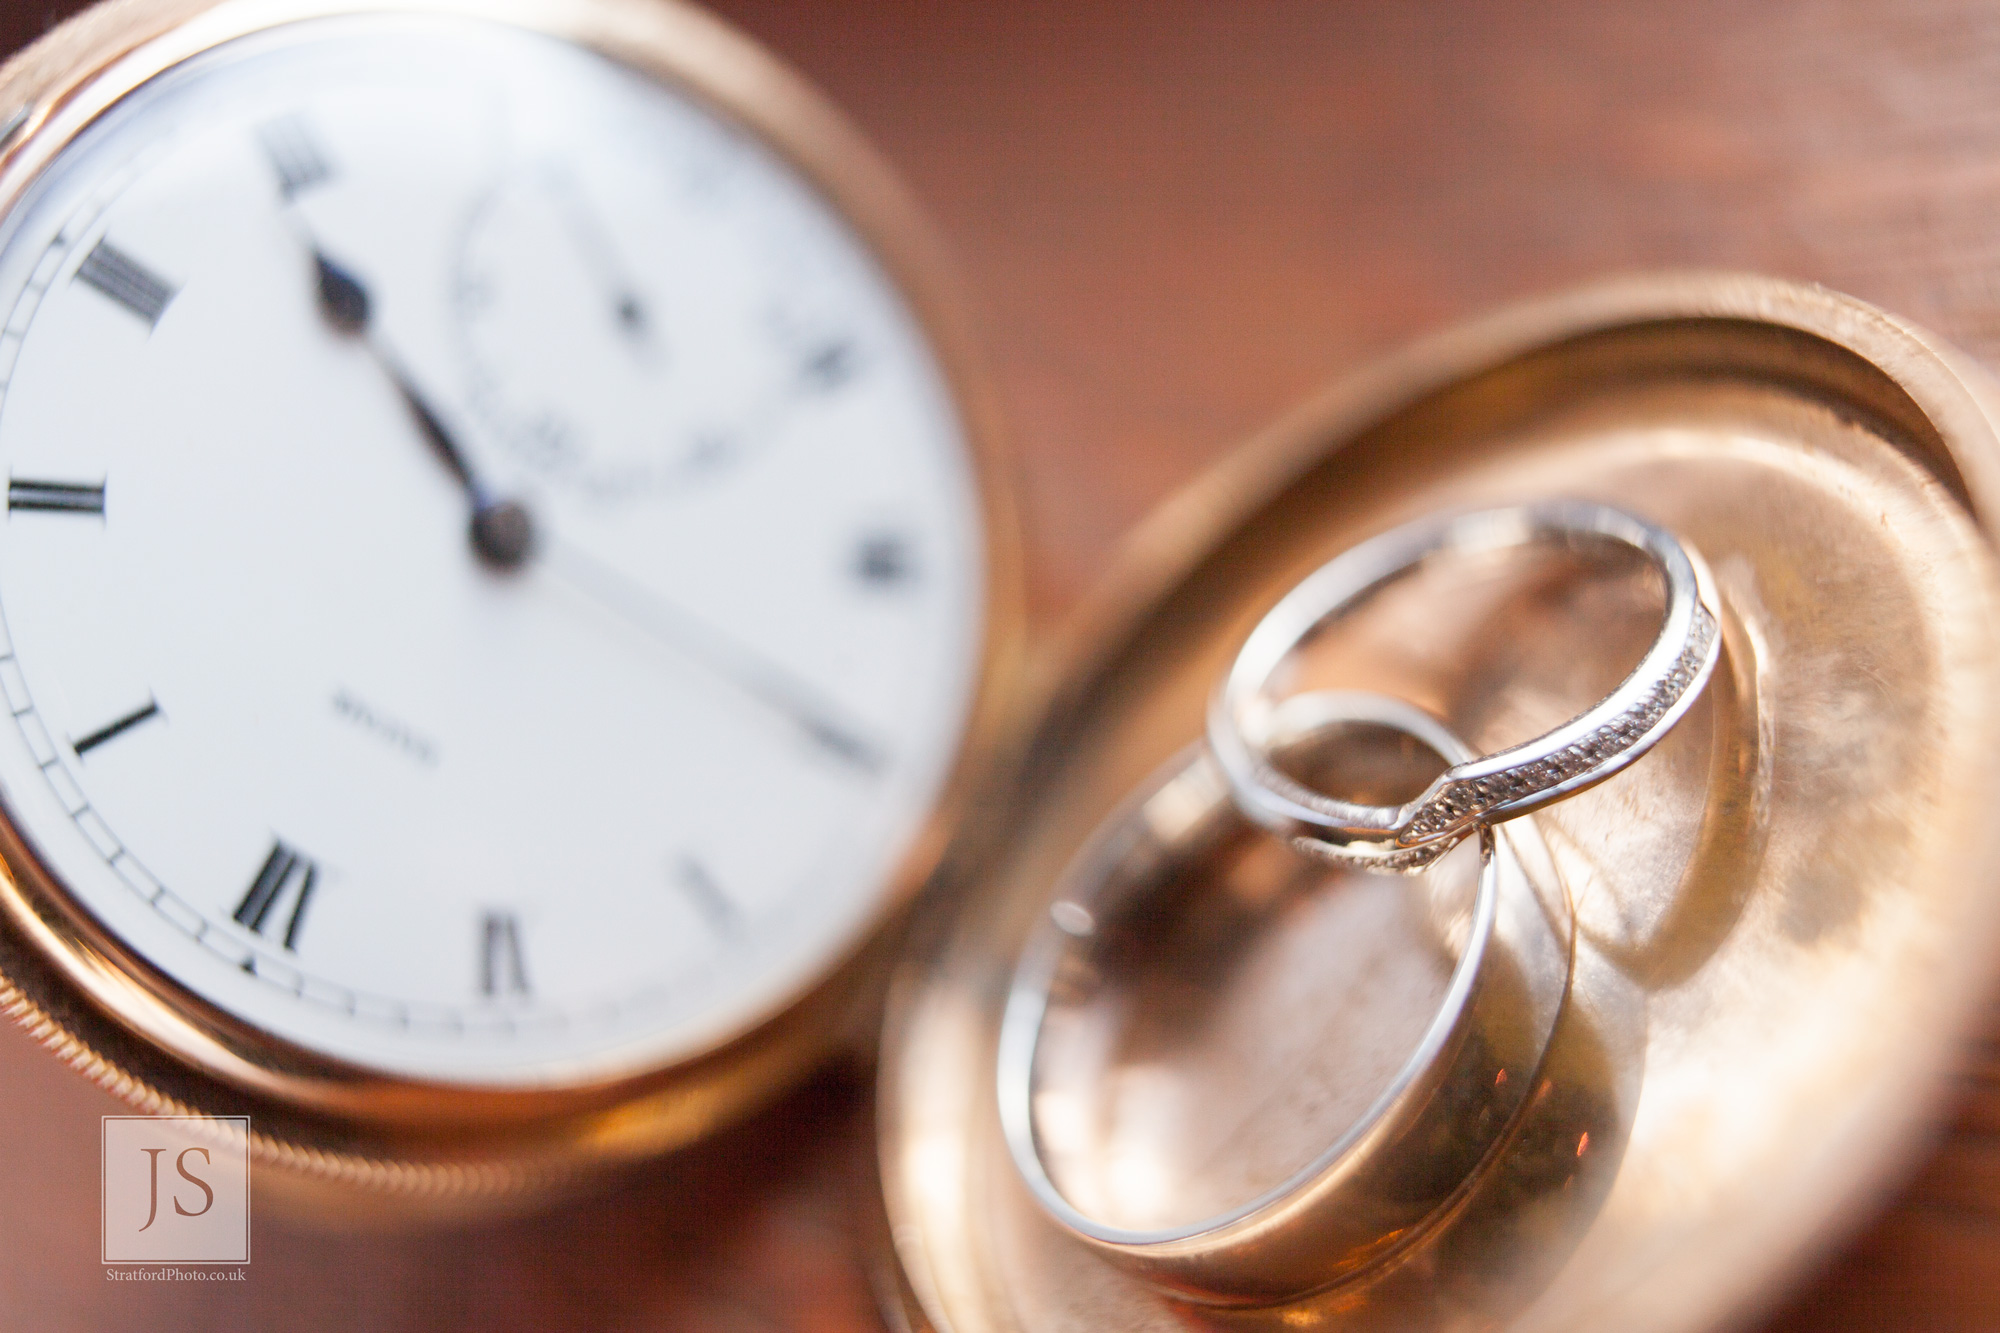 two wedding rings sit in the clasp of a gold fob watch